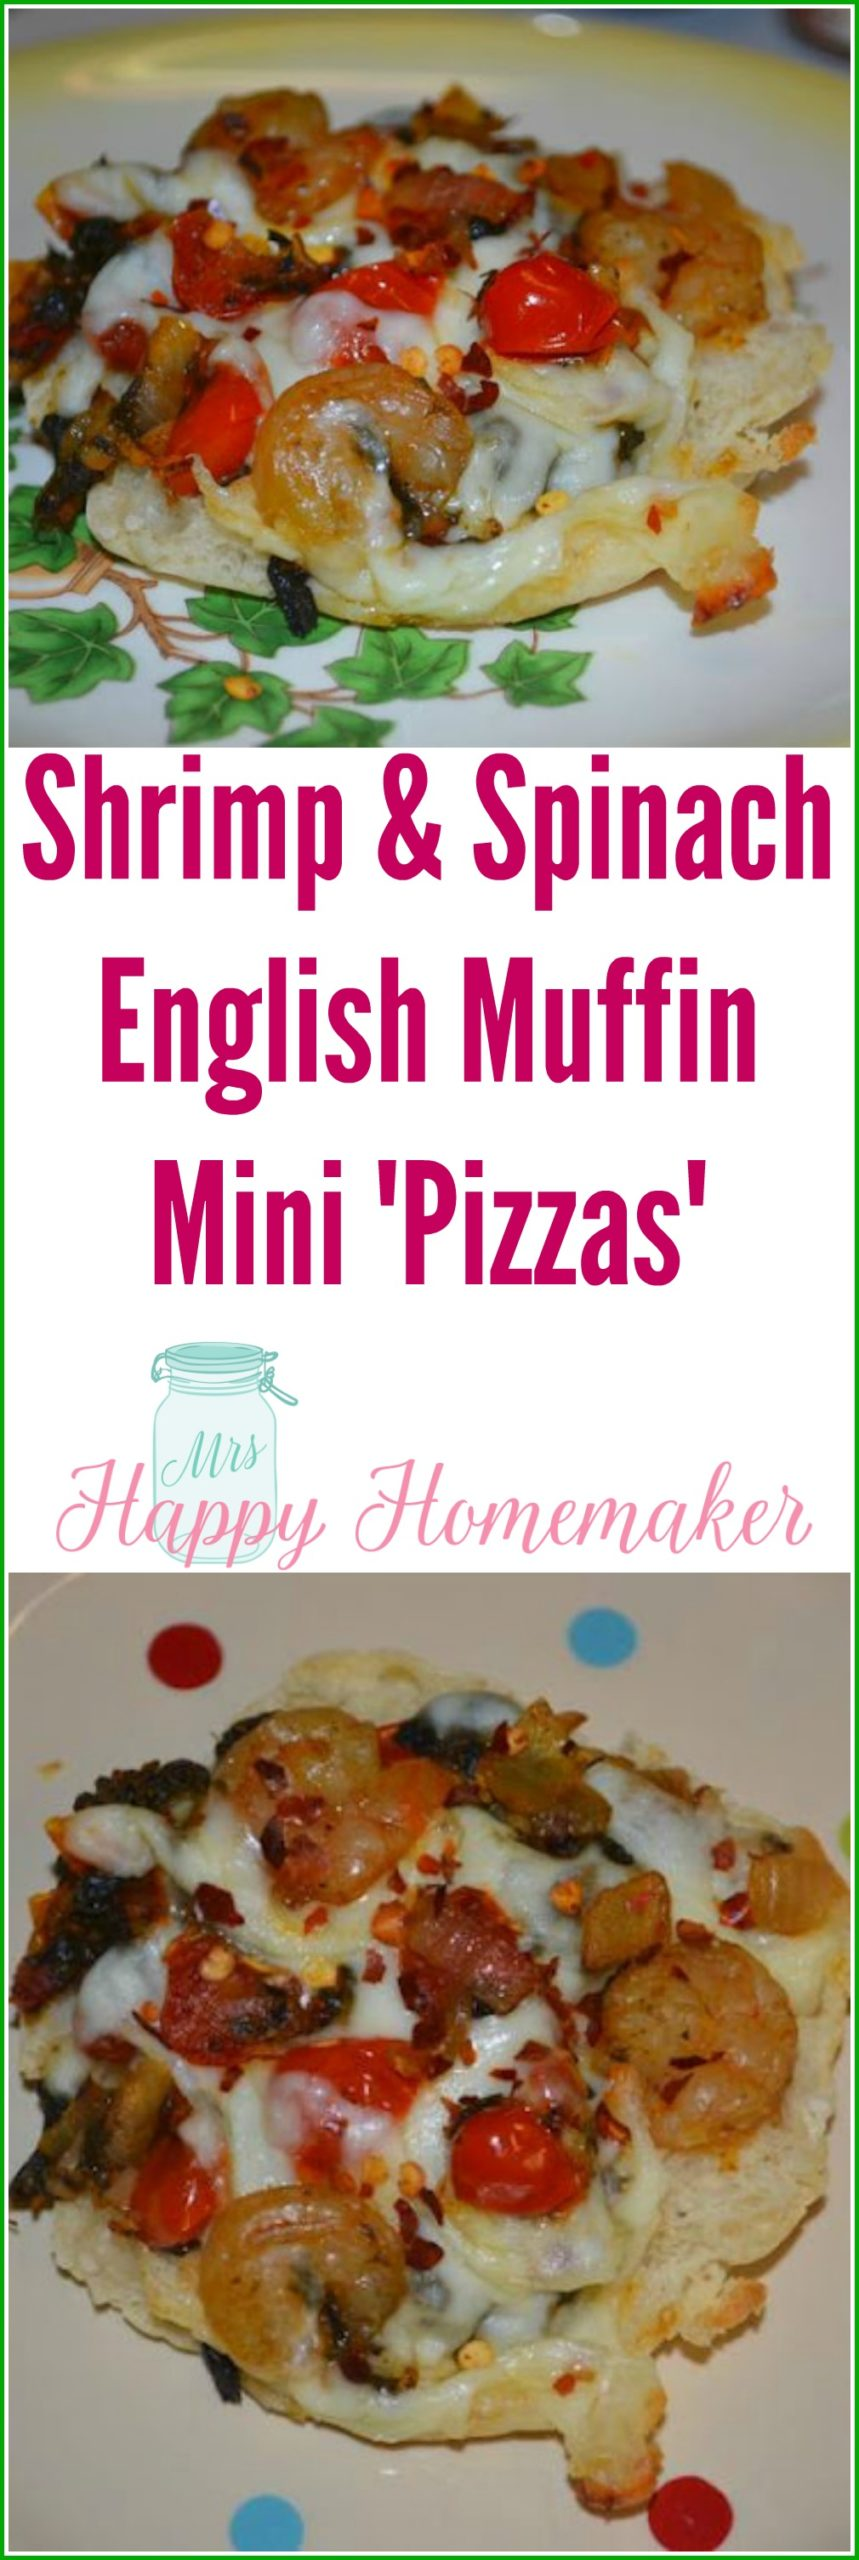 Shrimp & Spinach English Muffin Mini Pizzas - we love these low calorie miniature pizzas! They are great for an easy meal, a snack or appetizer, and the perfect Super Bowl Party food. You can switch out the proteins for other ones or leave out the meat all together for a vegetarian option.